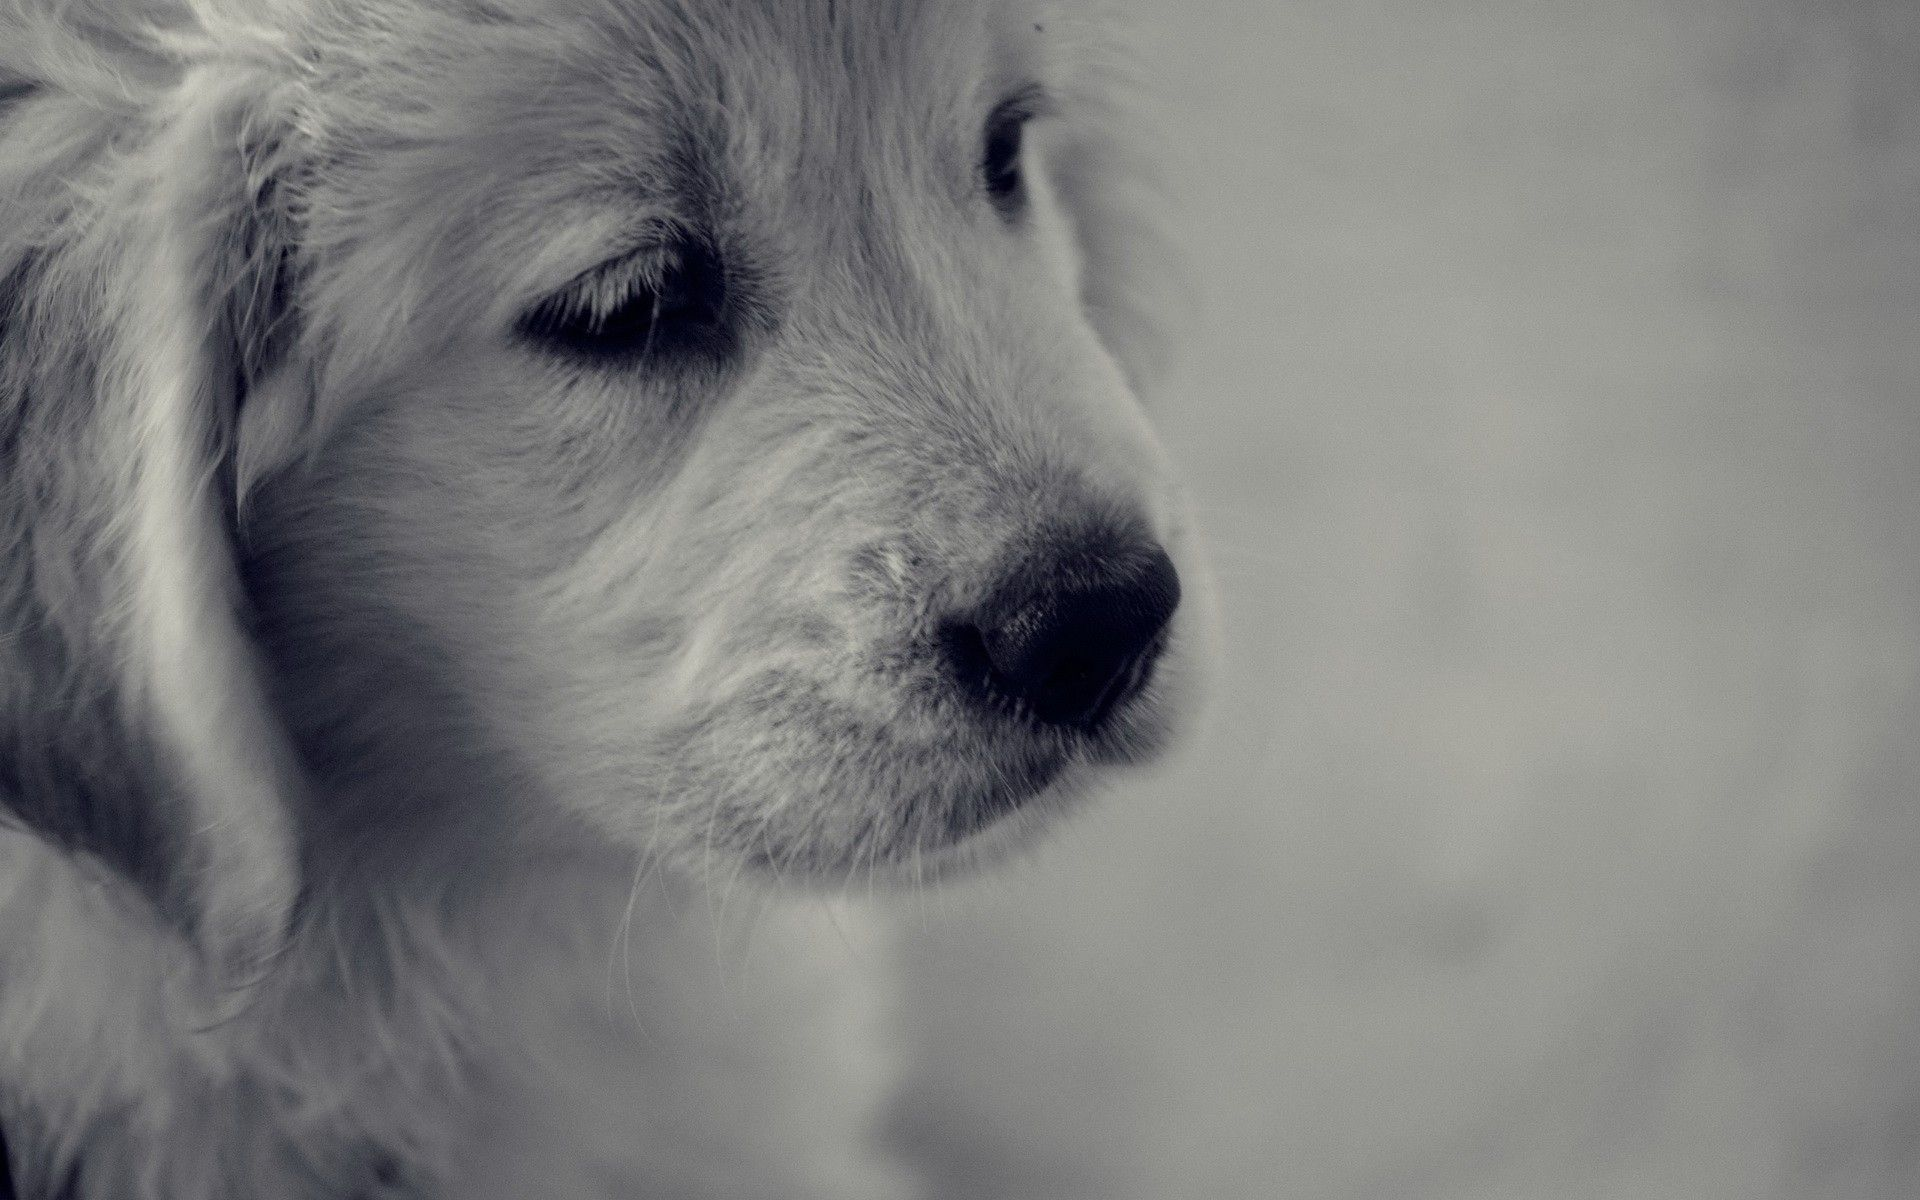 Best Sad Black Adorable Dog - 7eafe145498037a5af679198c36a781b  Gallery_711567  .jpg